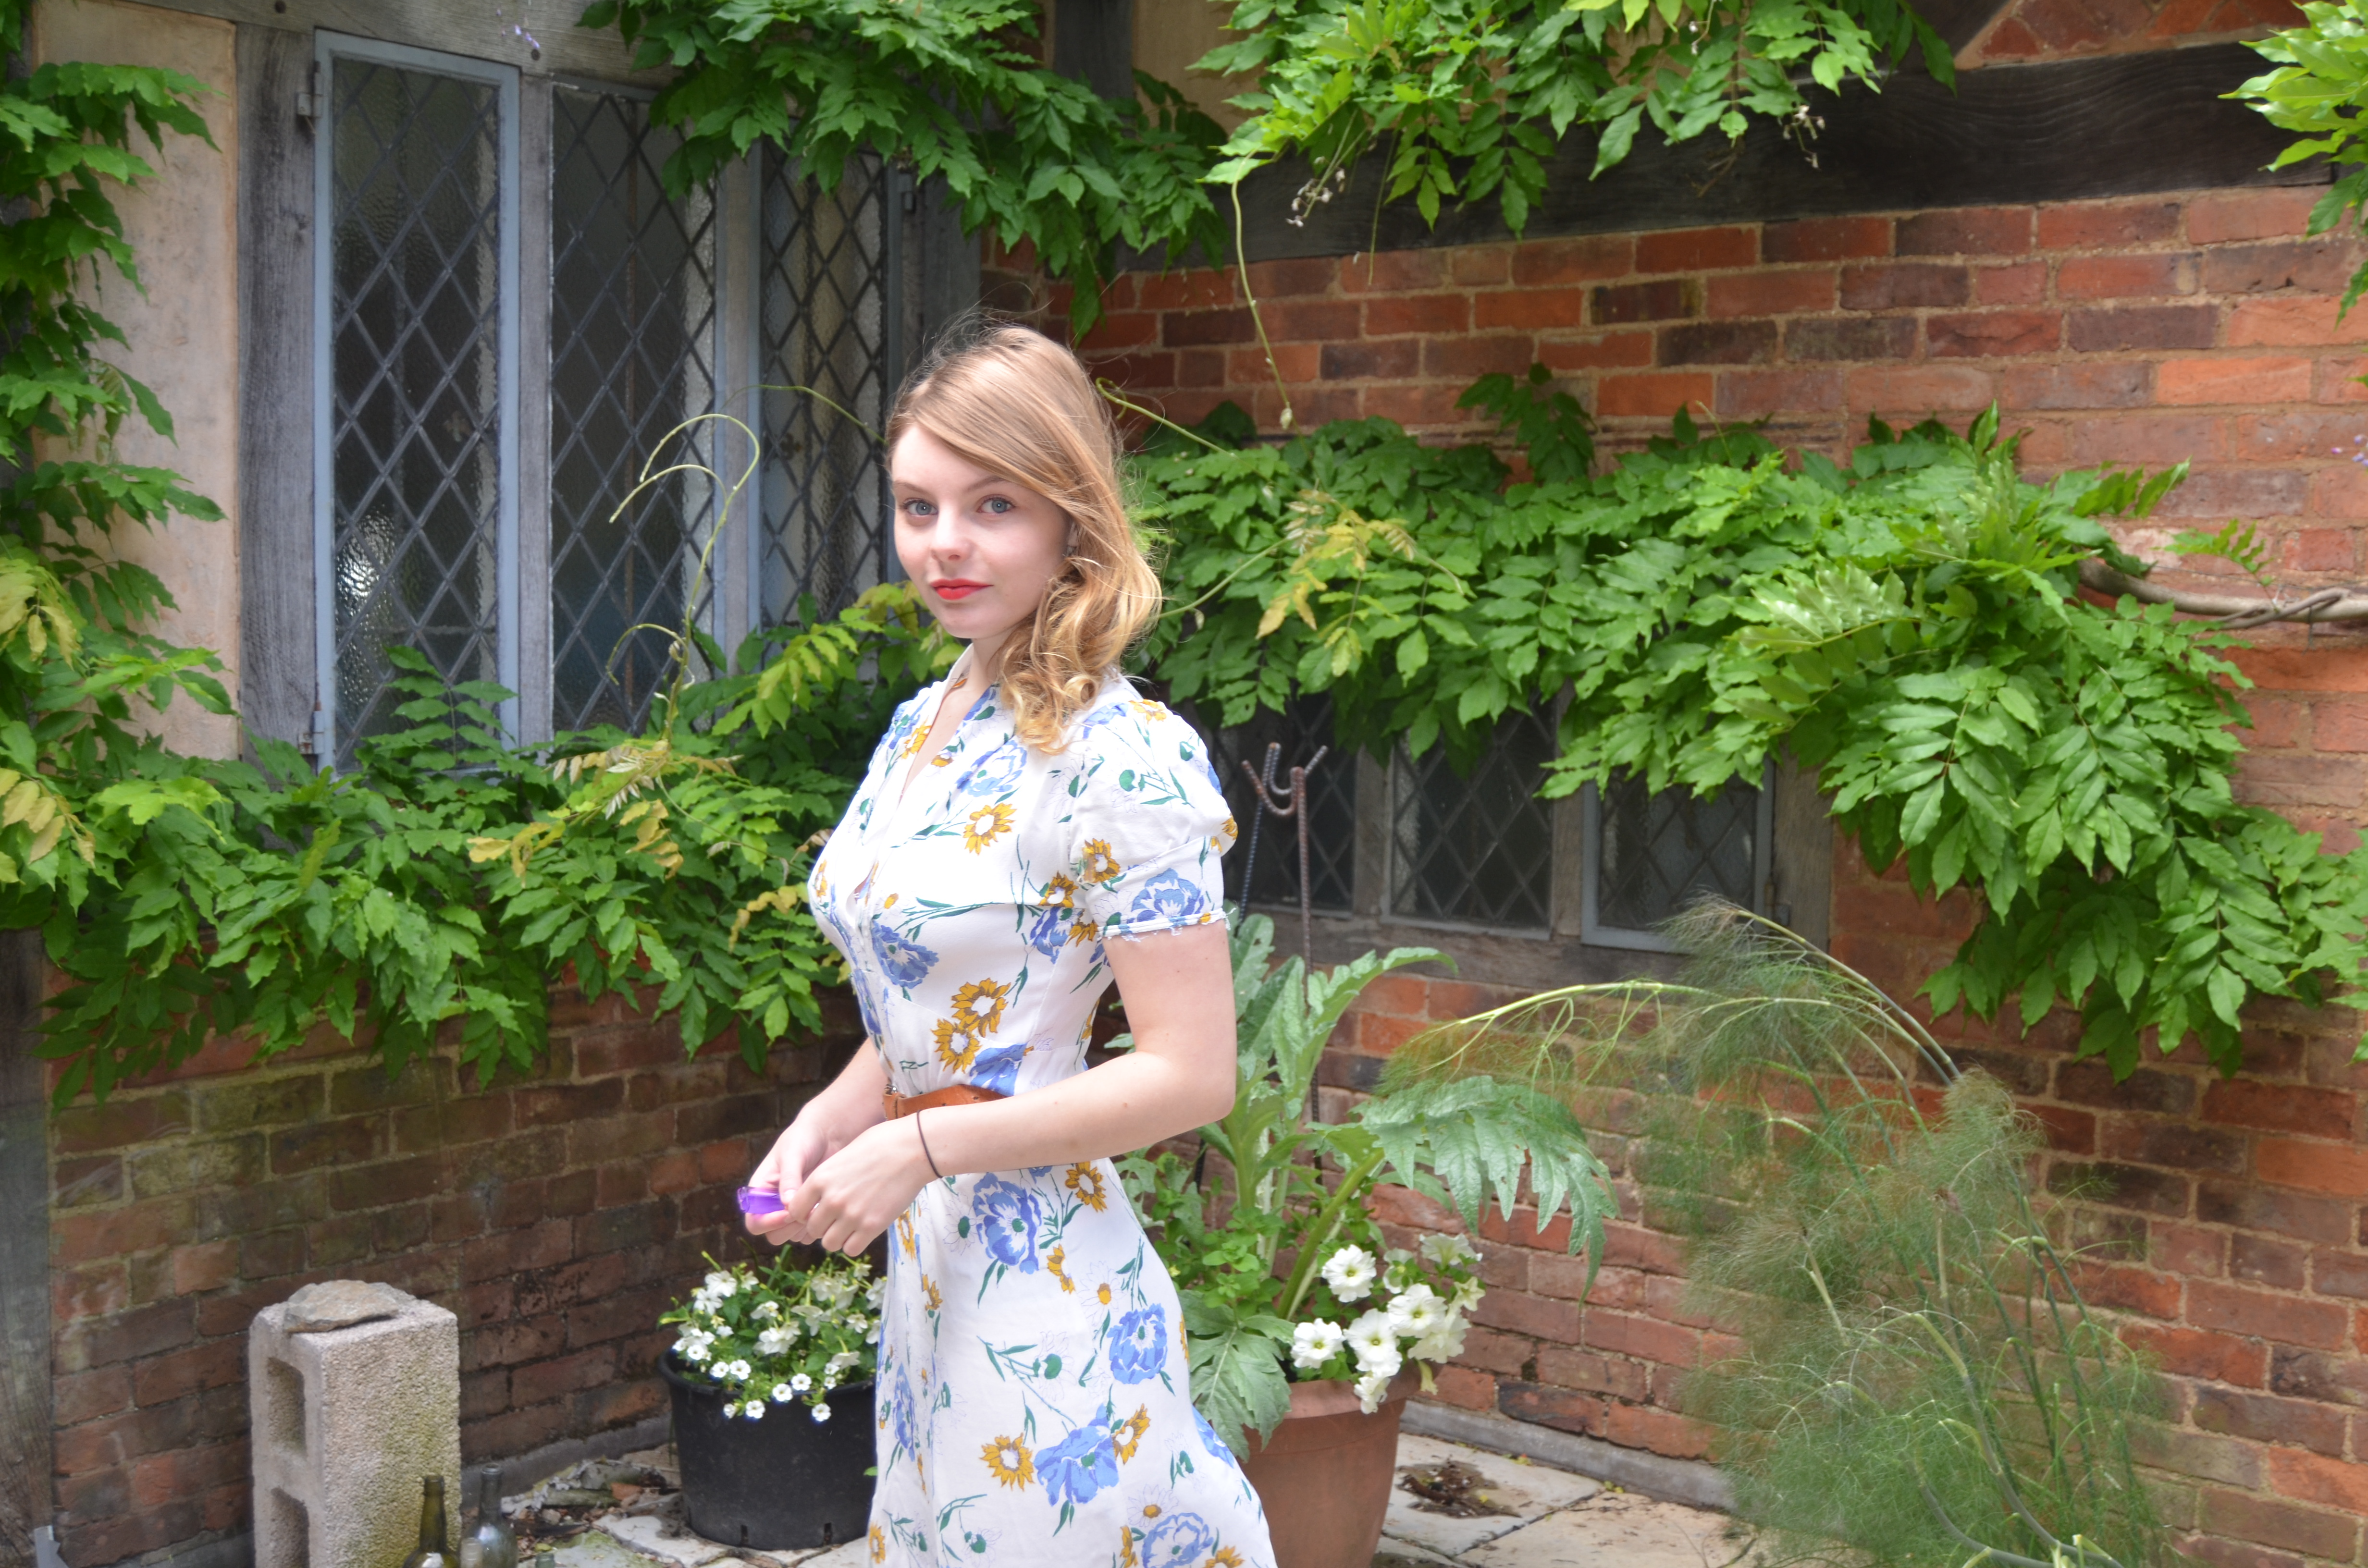 The 27-year old daughter of father (?) and mother(?) Nell Hudson in 2018 photo. Nell Hudson earned a  million dollar salary - leaving the net worth at 1 million in 2018